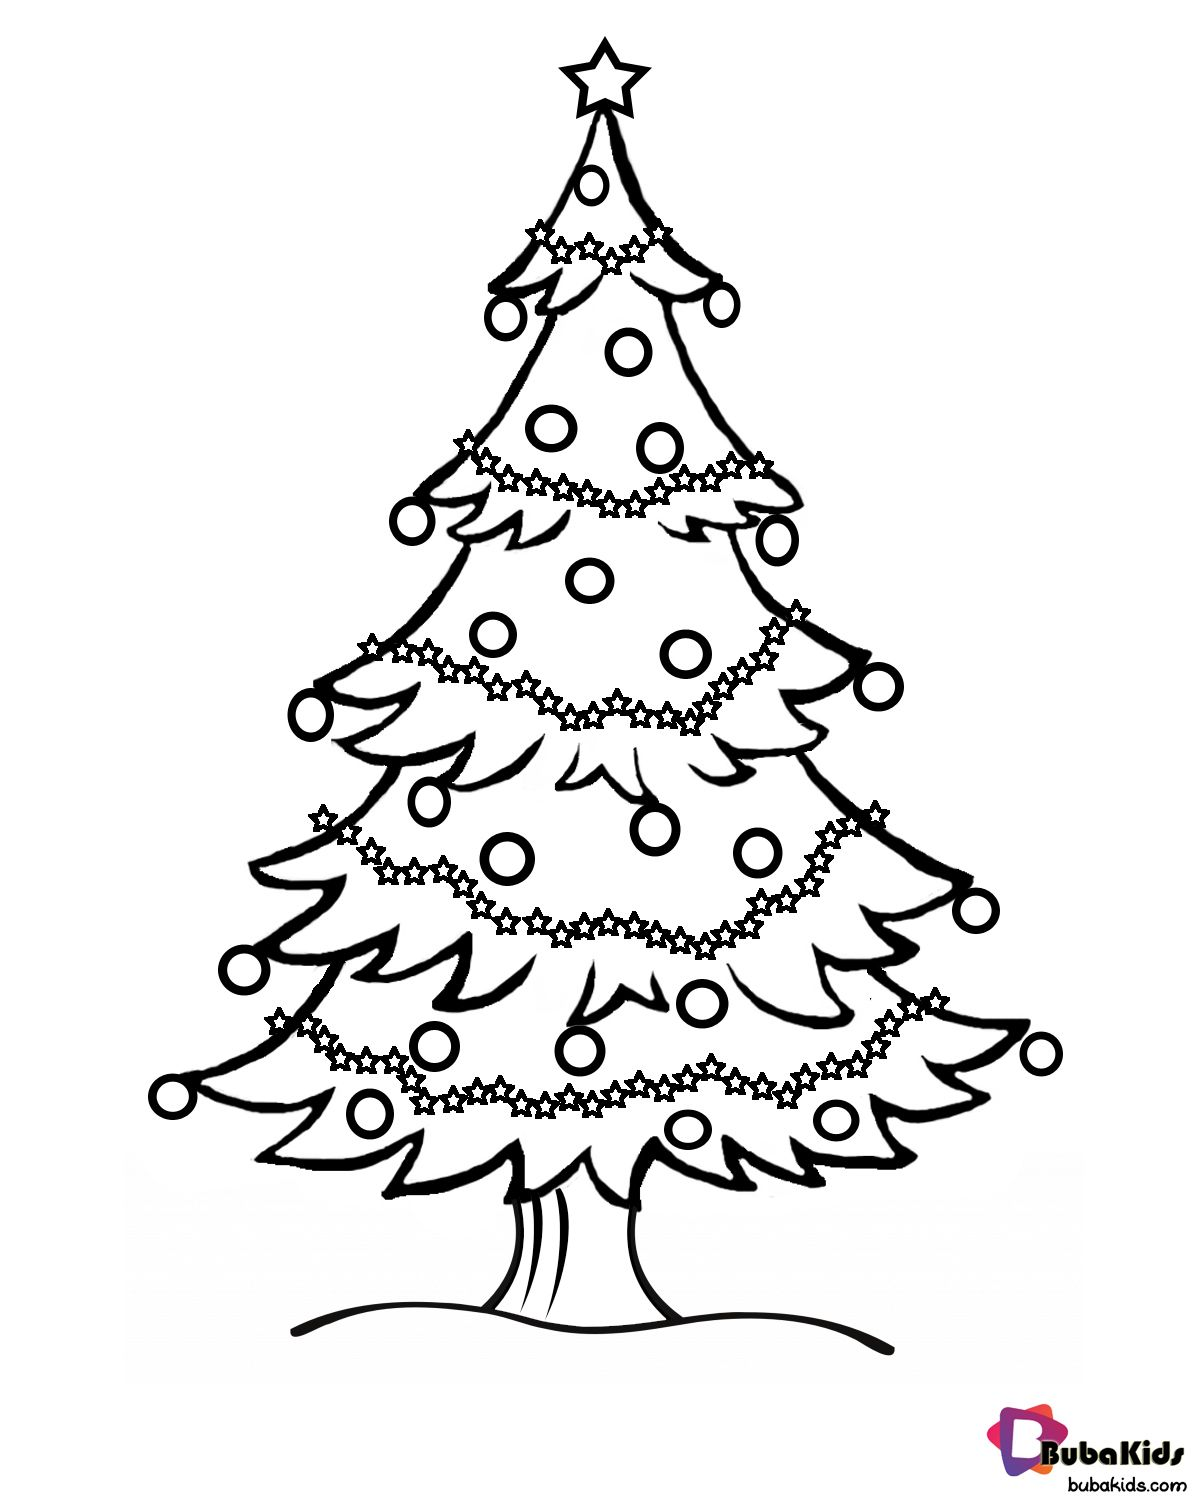 Cool Christmas Tree Coloring Page Portraits